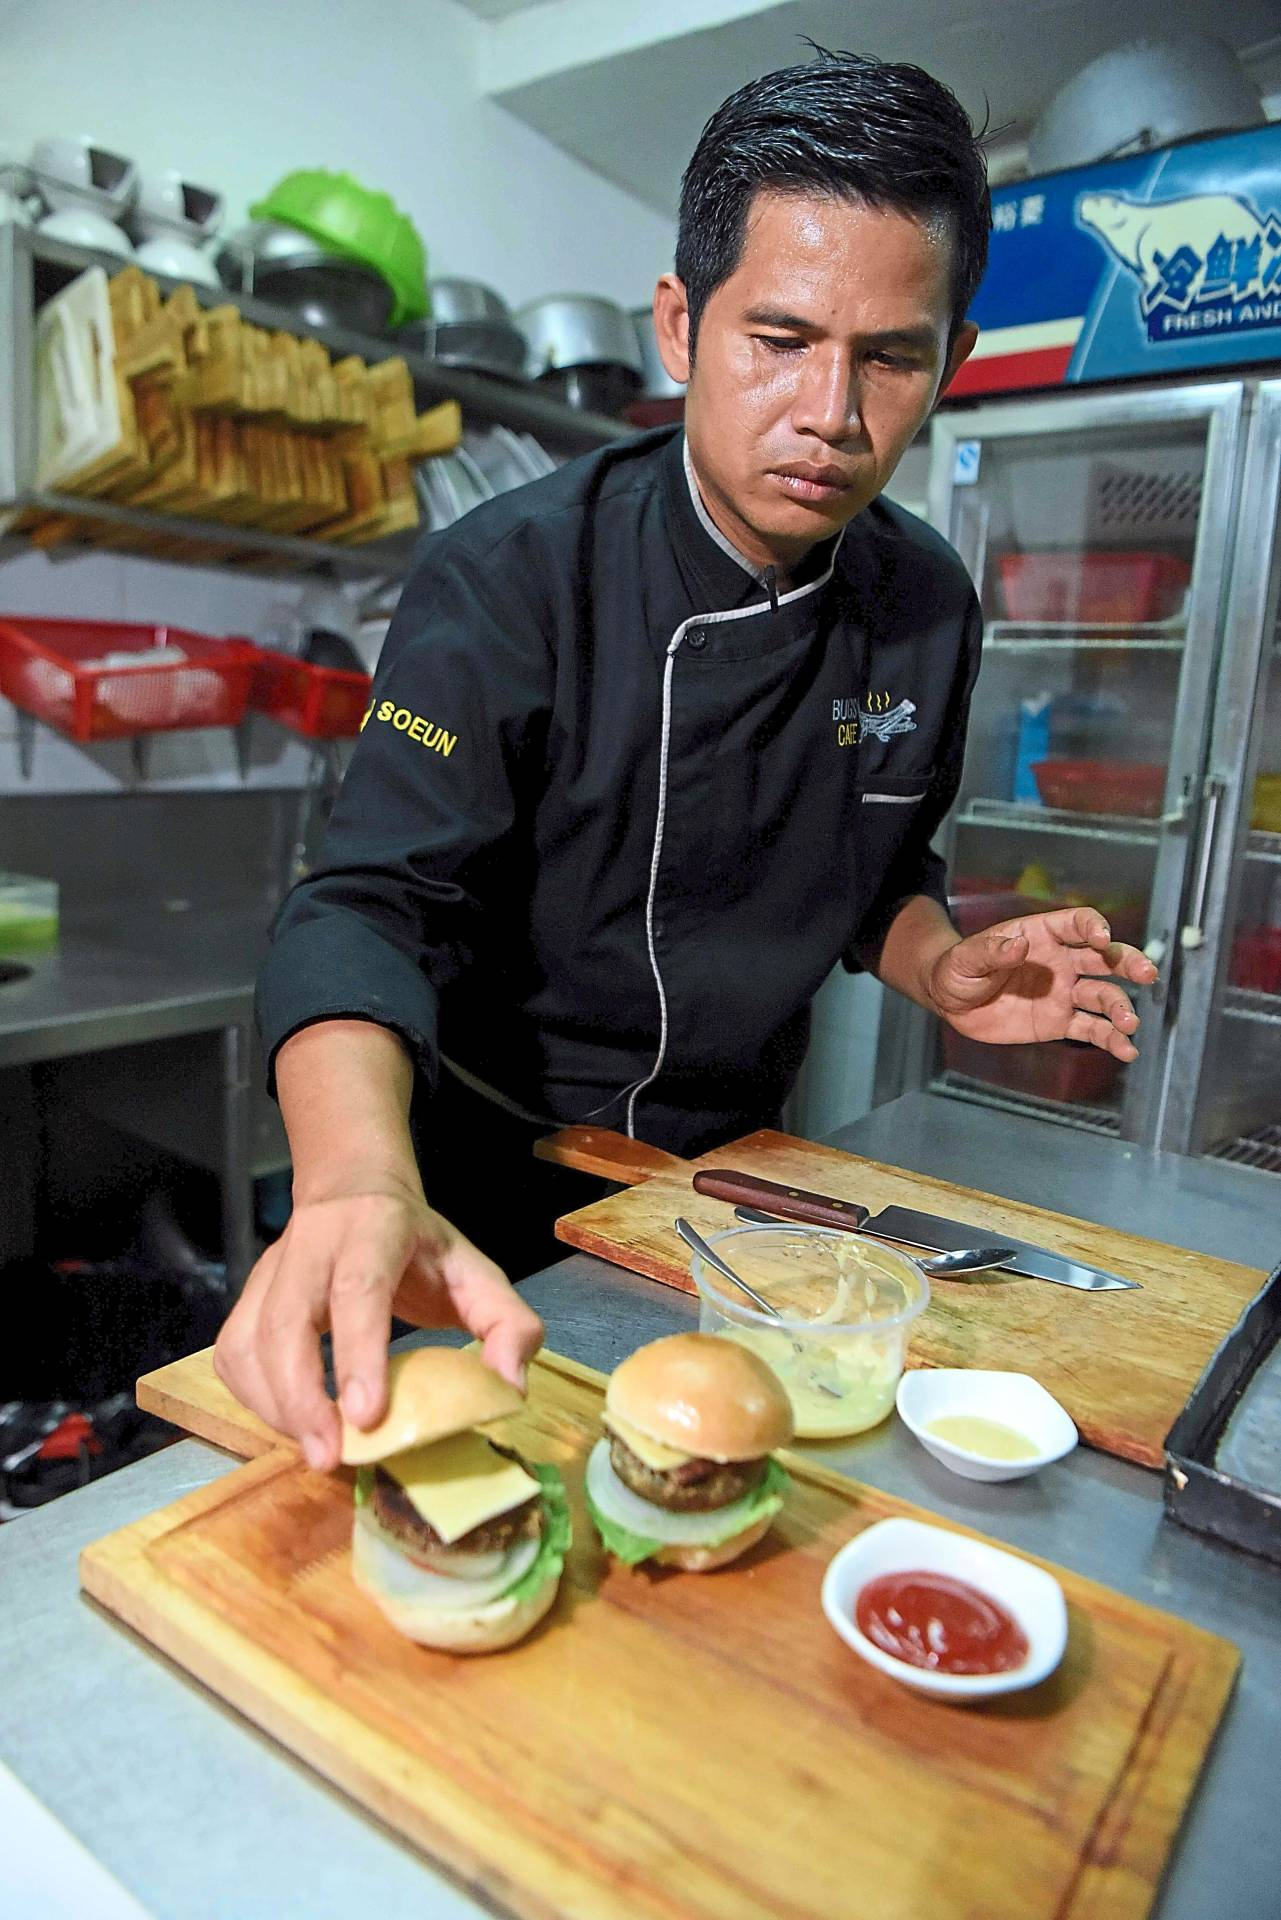 Acquired taste: Soeun preparing a 'bug mac' with a patty of pureed ant, bee, silkworm and cricket topped with a slice of cheese and pickle at Bugs Cafe in Siem Reap province.